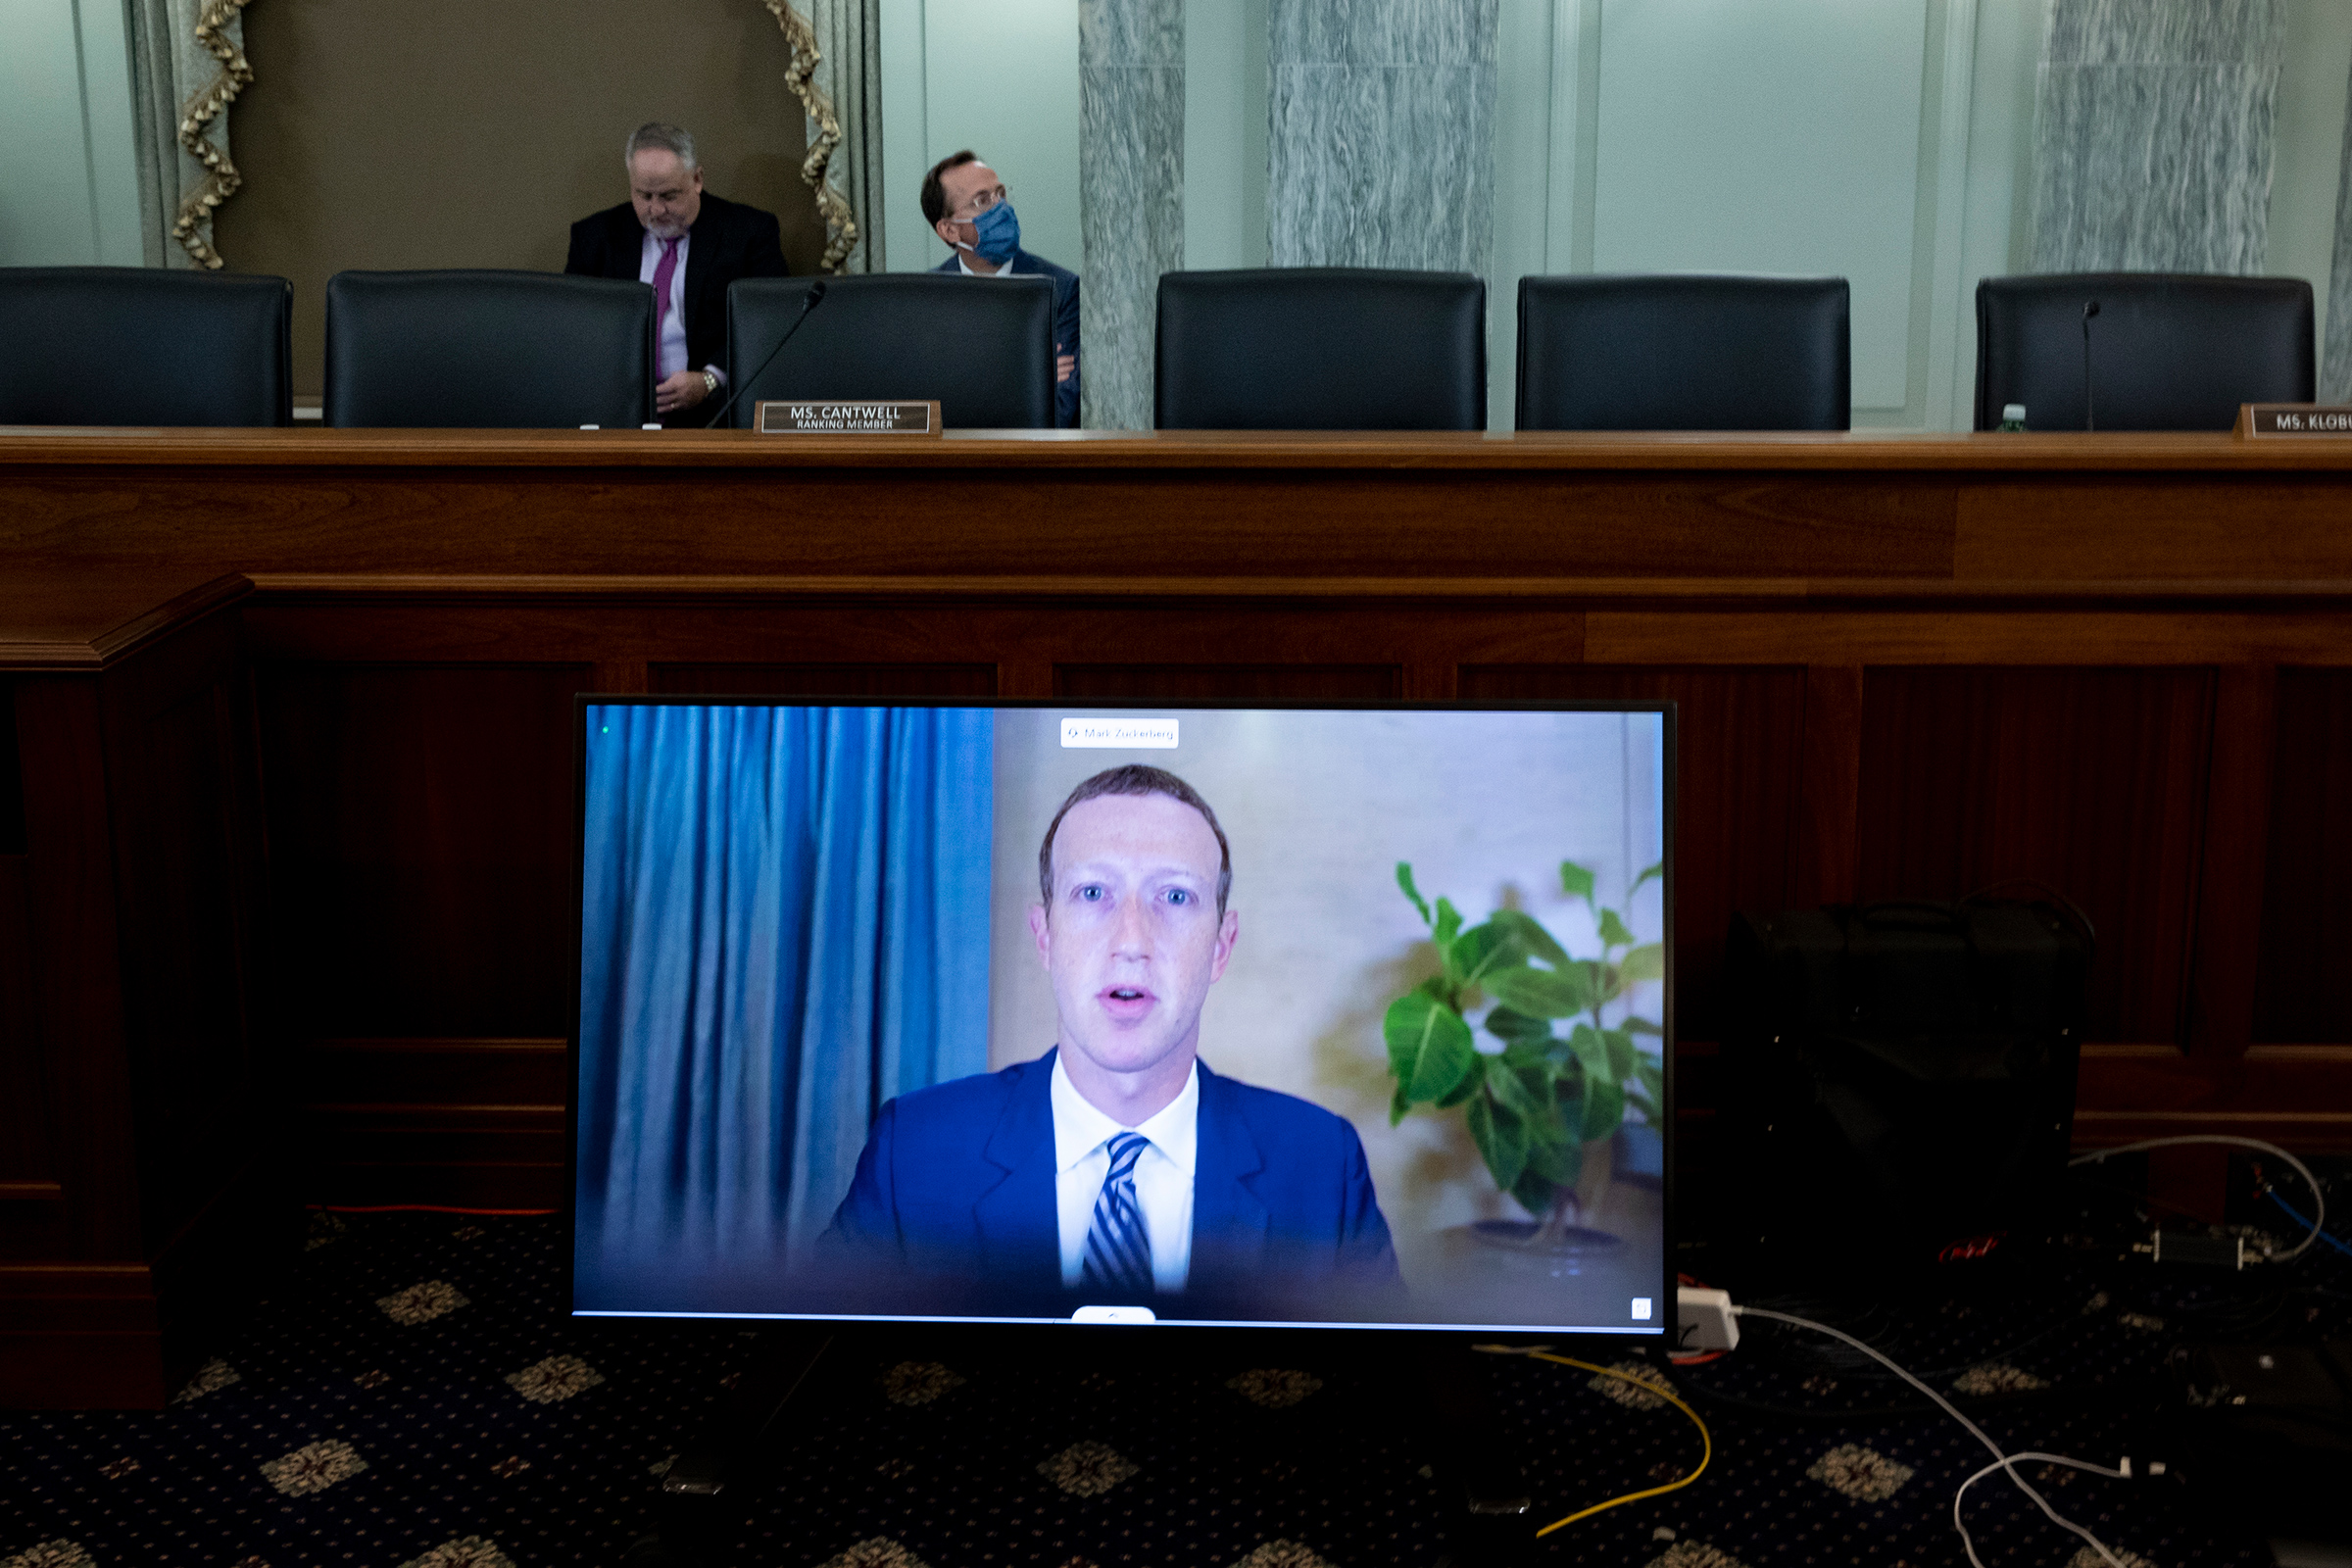 Mark Zuckerberg, founder and CEO of Facebook, testifying remotely during a Senate hearing on Section 230, on Oct. 28